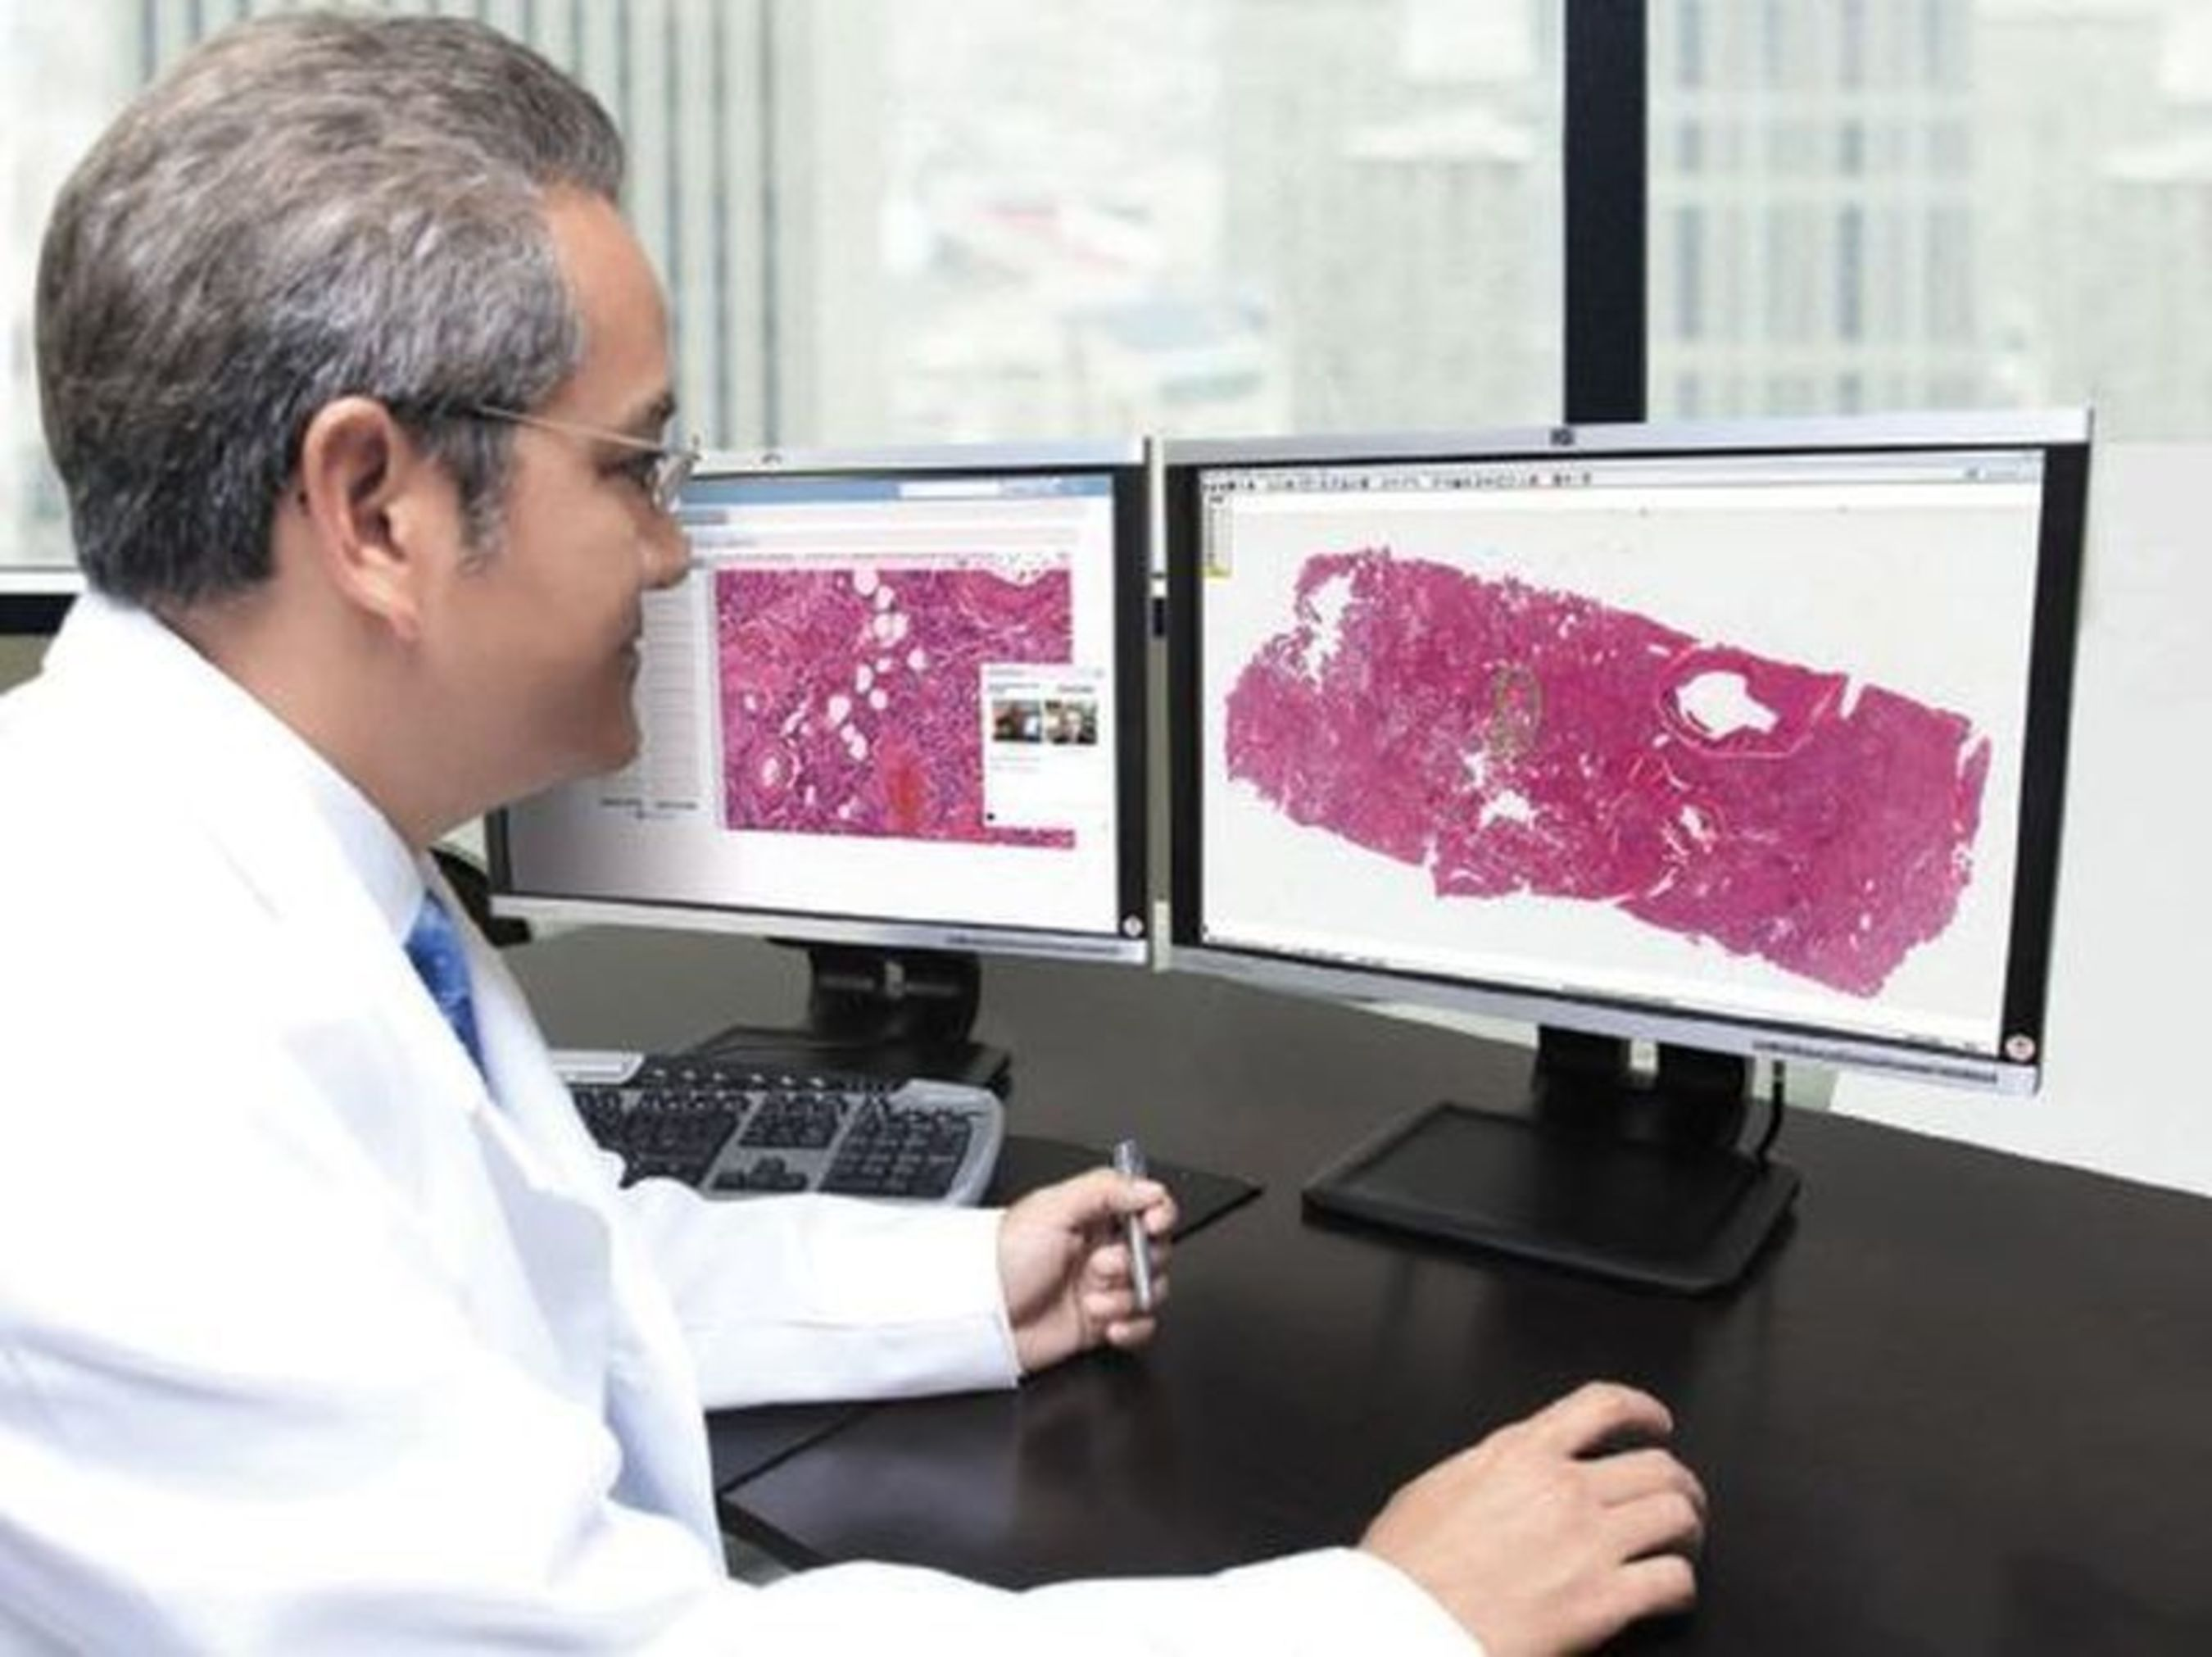 Aperio ePathAccess allows pathologists to securely and quickly upload patient case information and associated digital pathology images to the cloud-based software for rapid consultation, collaboration, and quality assurance. The ISO 27001 certification reflects the high level of security provided by Aperio ePathAccess. (PRNewsFoto/Leica Biosystems)